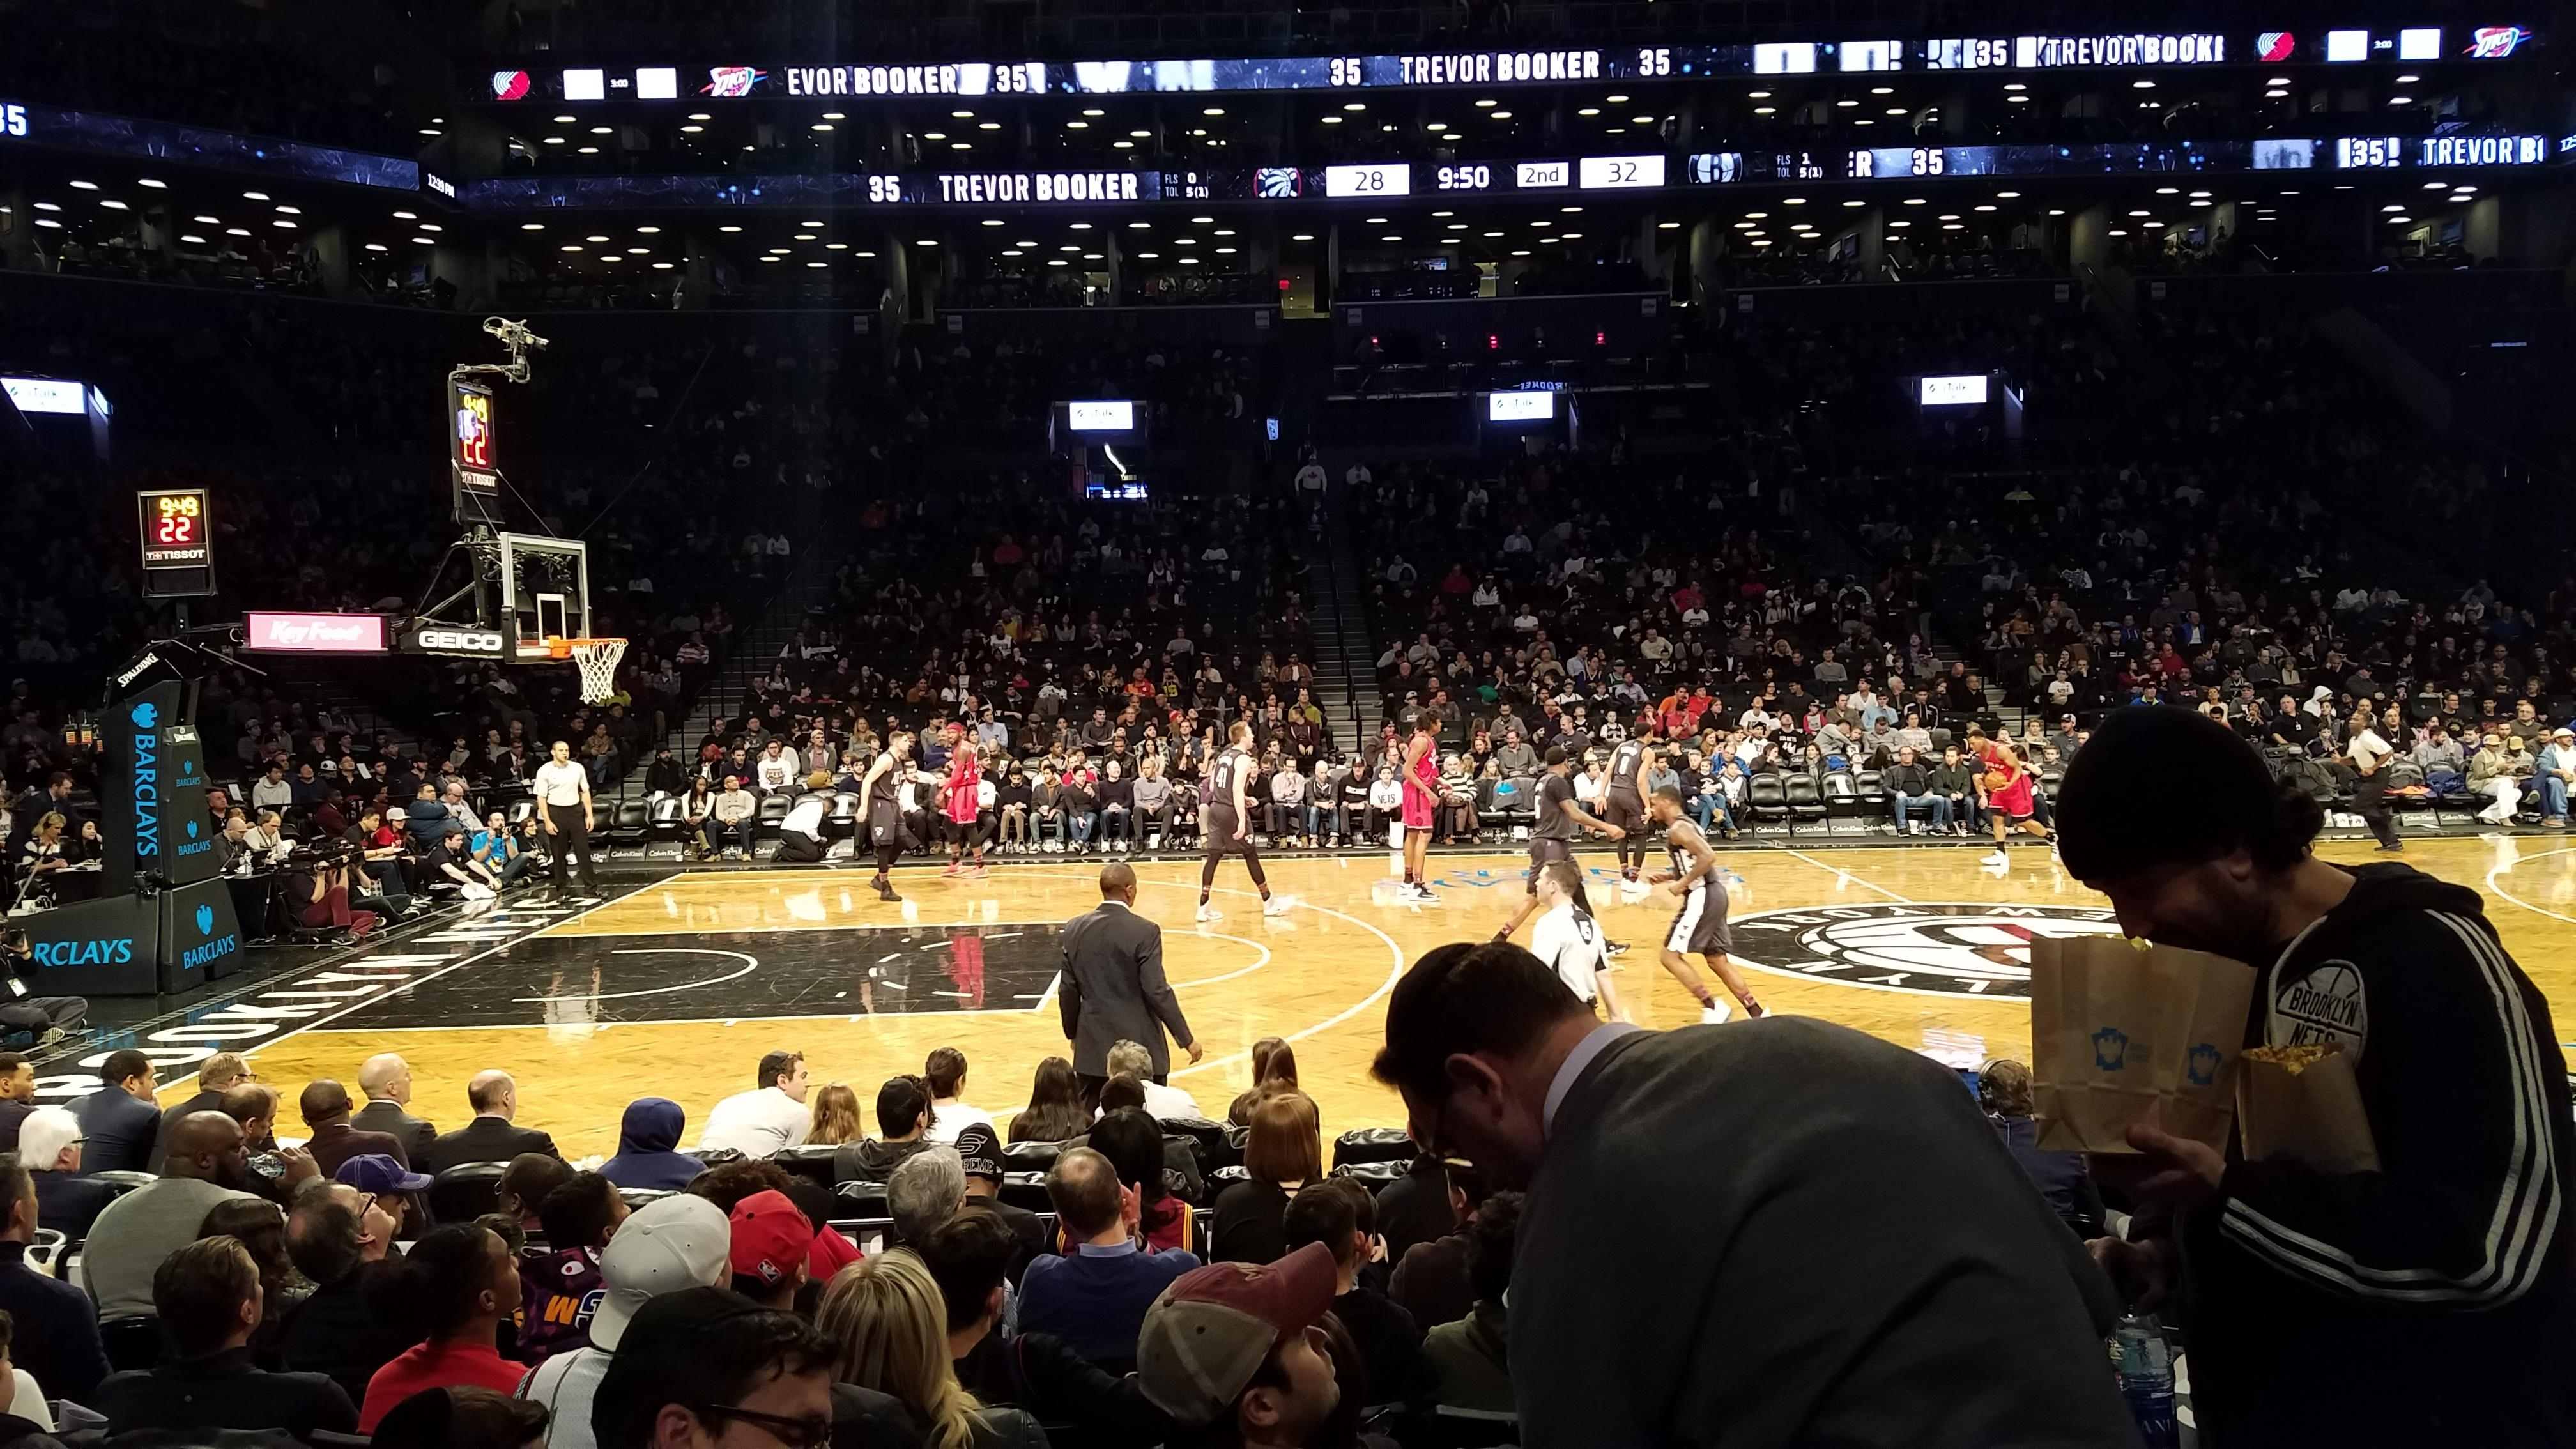 Barclays Center Section 9 Row 6 Seat 2